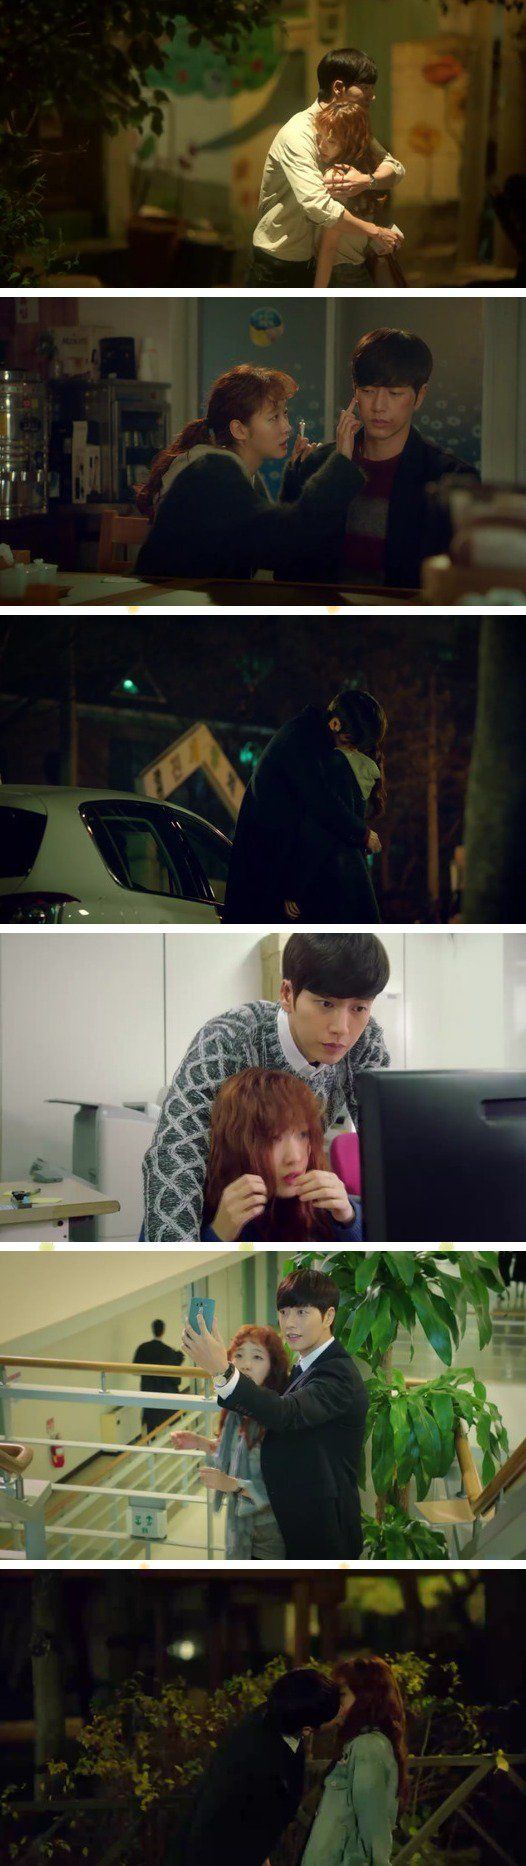 Added final episode 16 captures for the Korean drama 'Cheese in the Trap'.